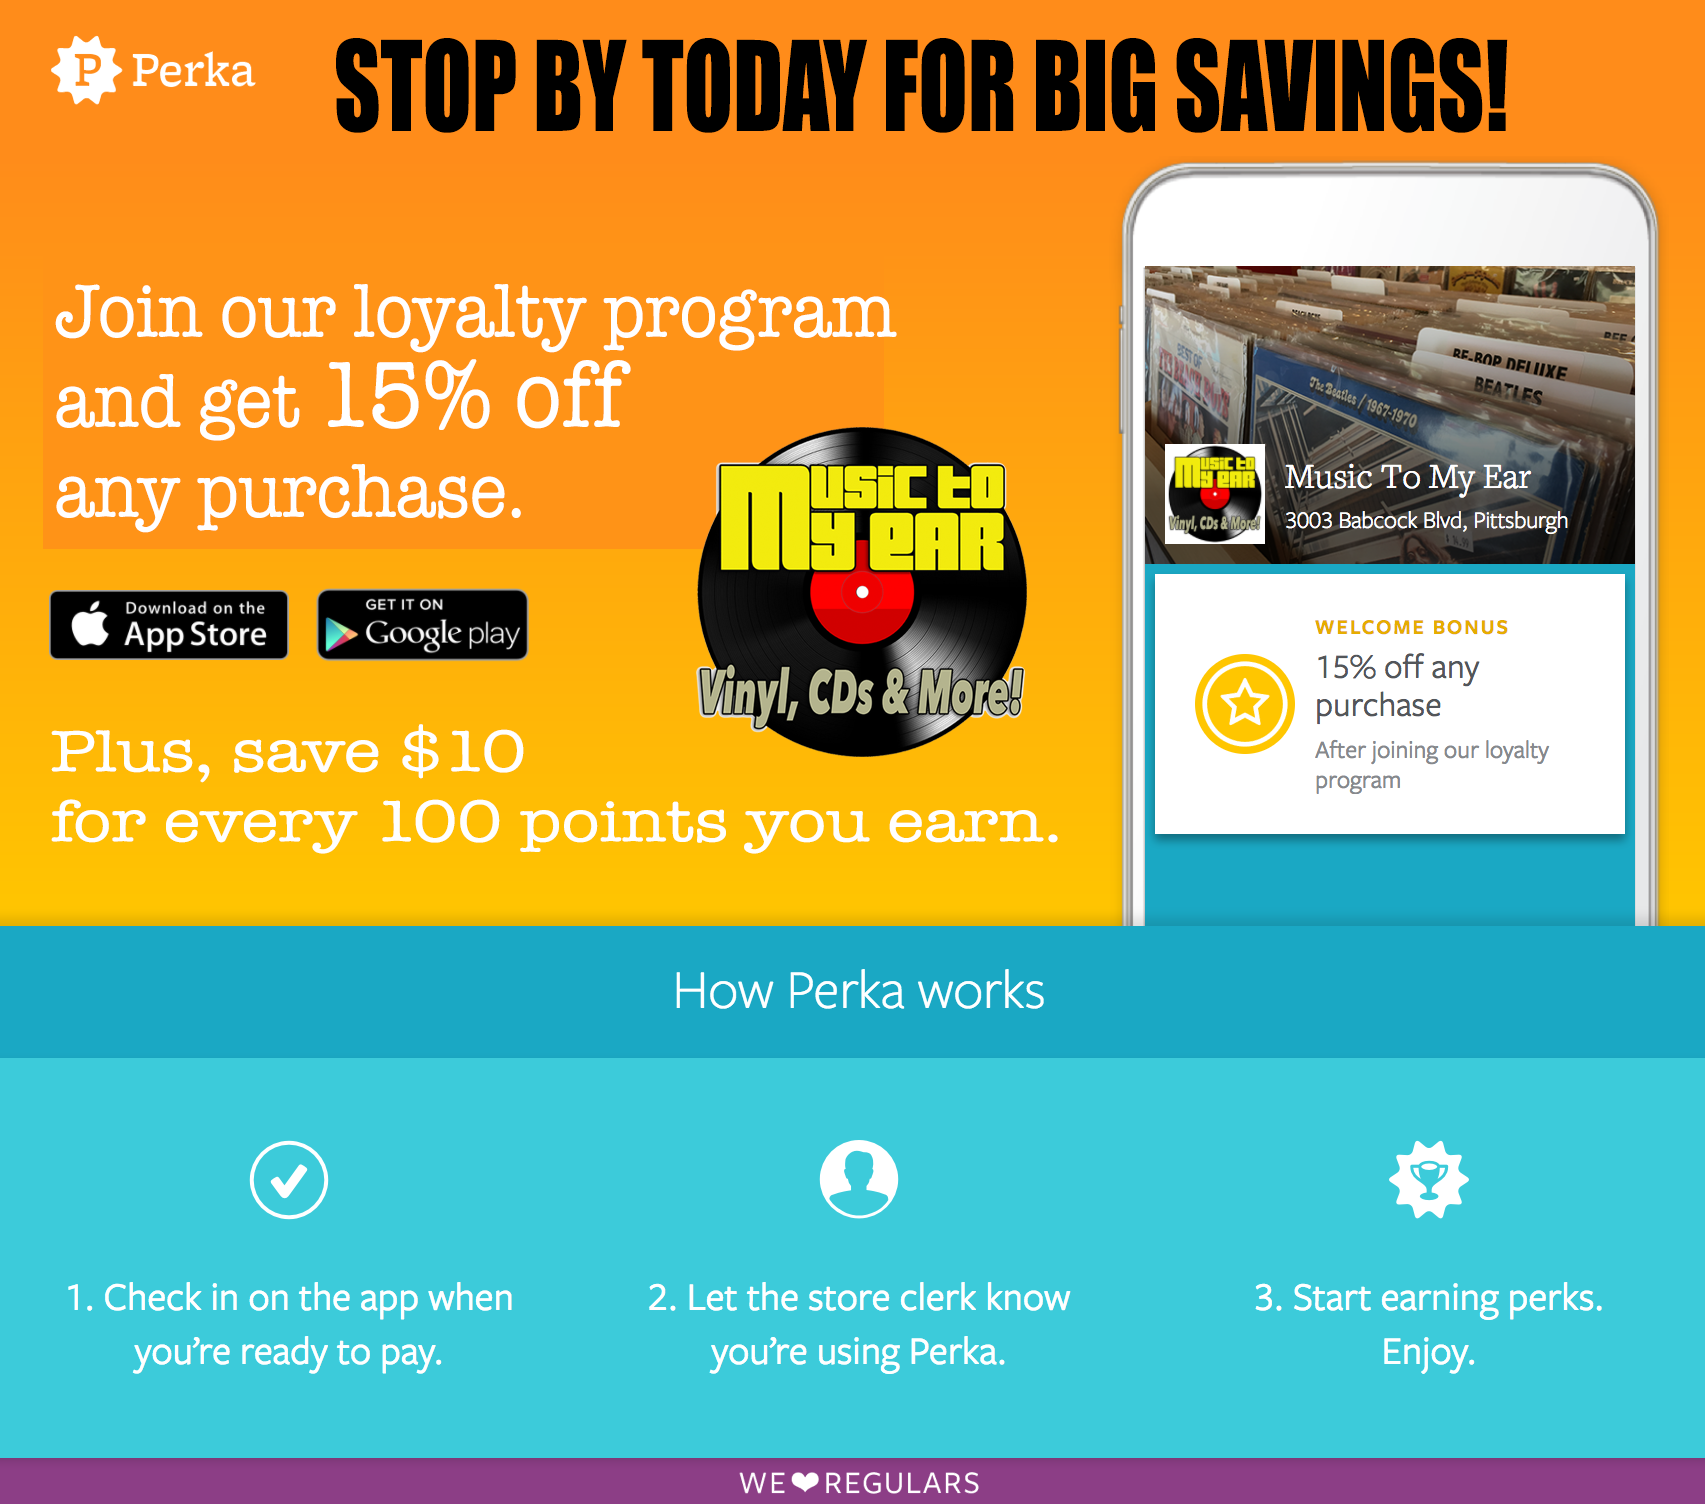 Music To My Ear offers big savings with Perka Rewards Program.